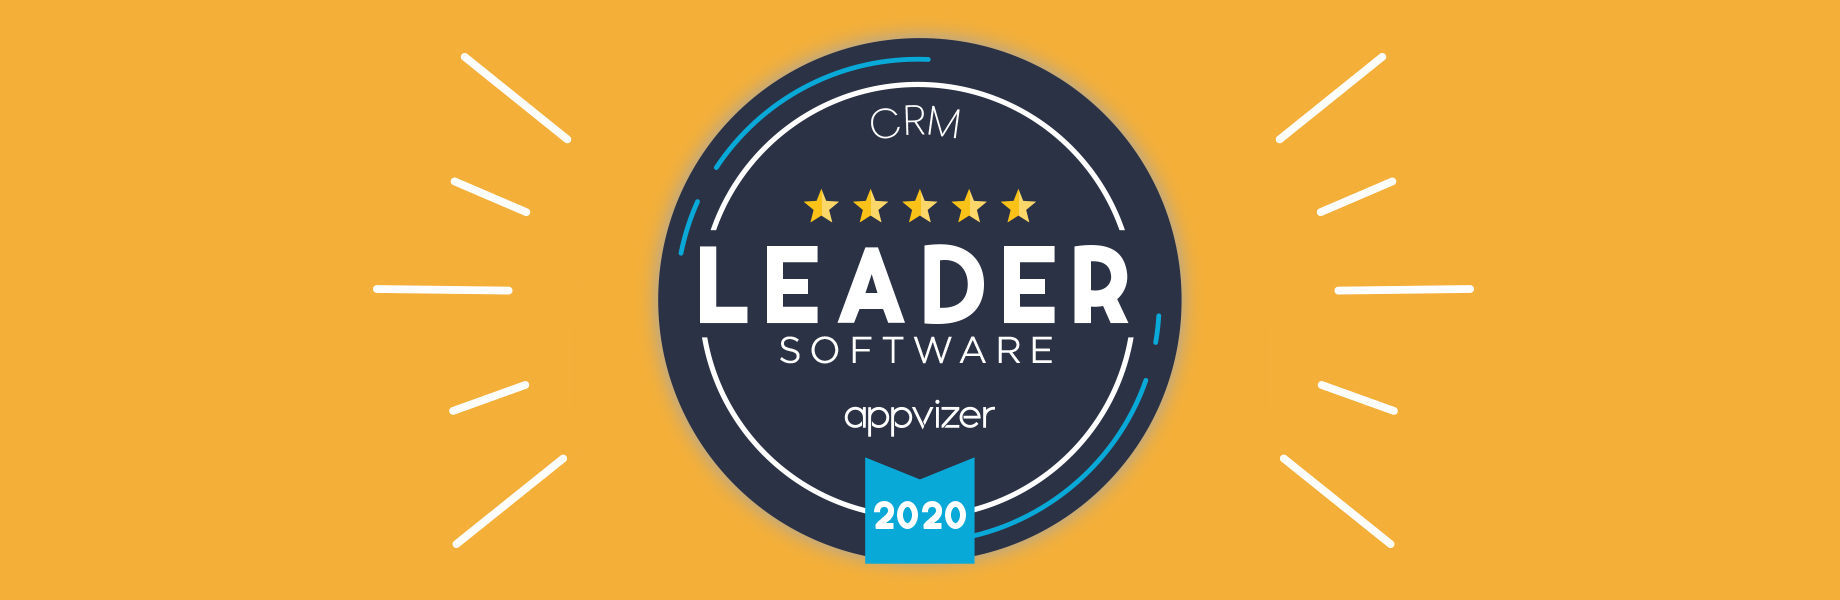 Why is a Leader appvizer badge assigned to a software?